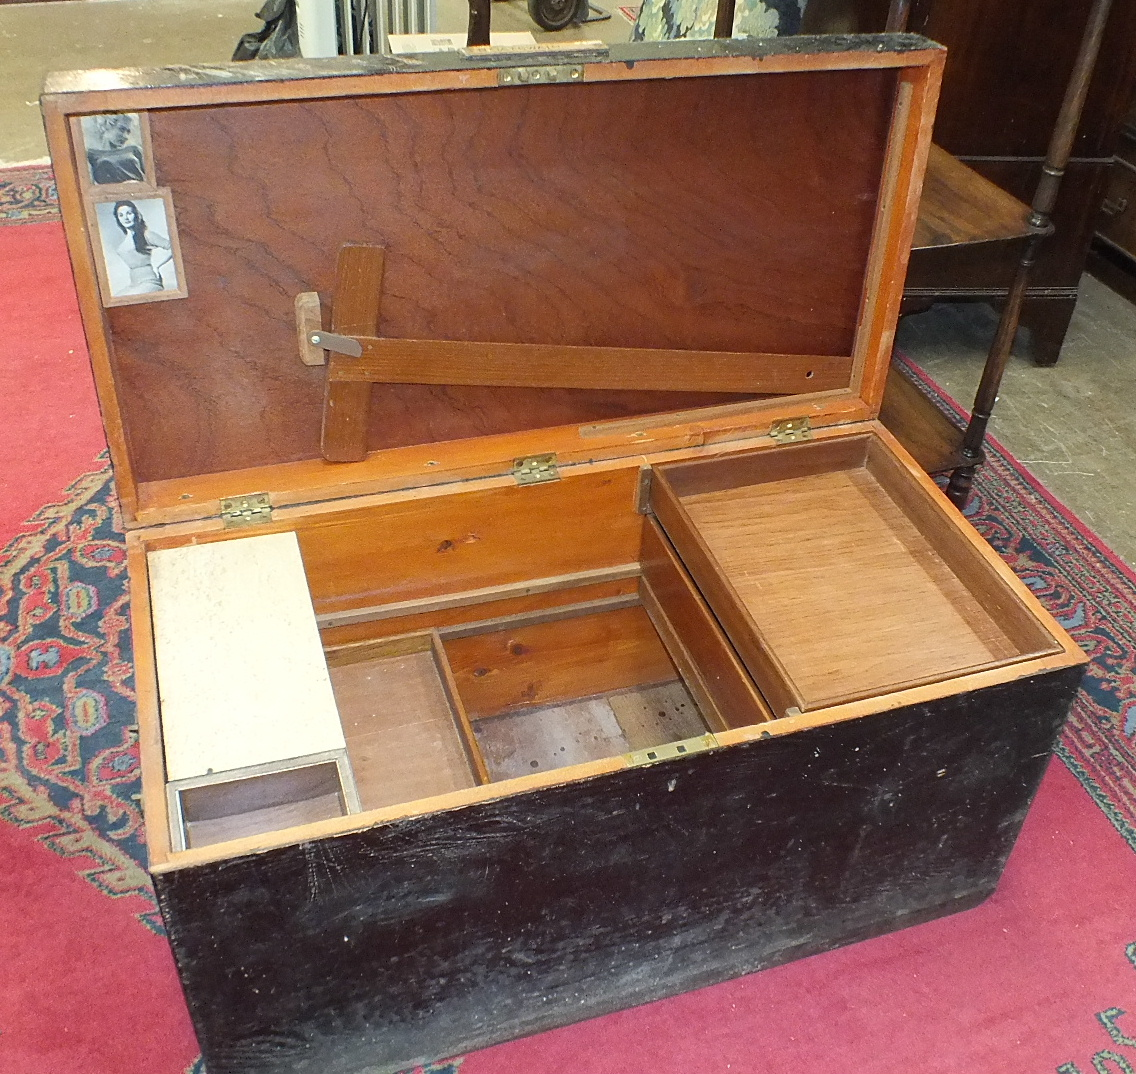 A stained pine tool box fitted with trays and brass carrying handles, 95cm wide, together with a - Image 2 of 3